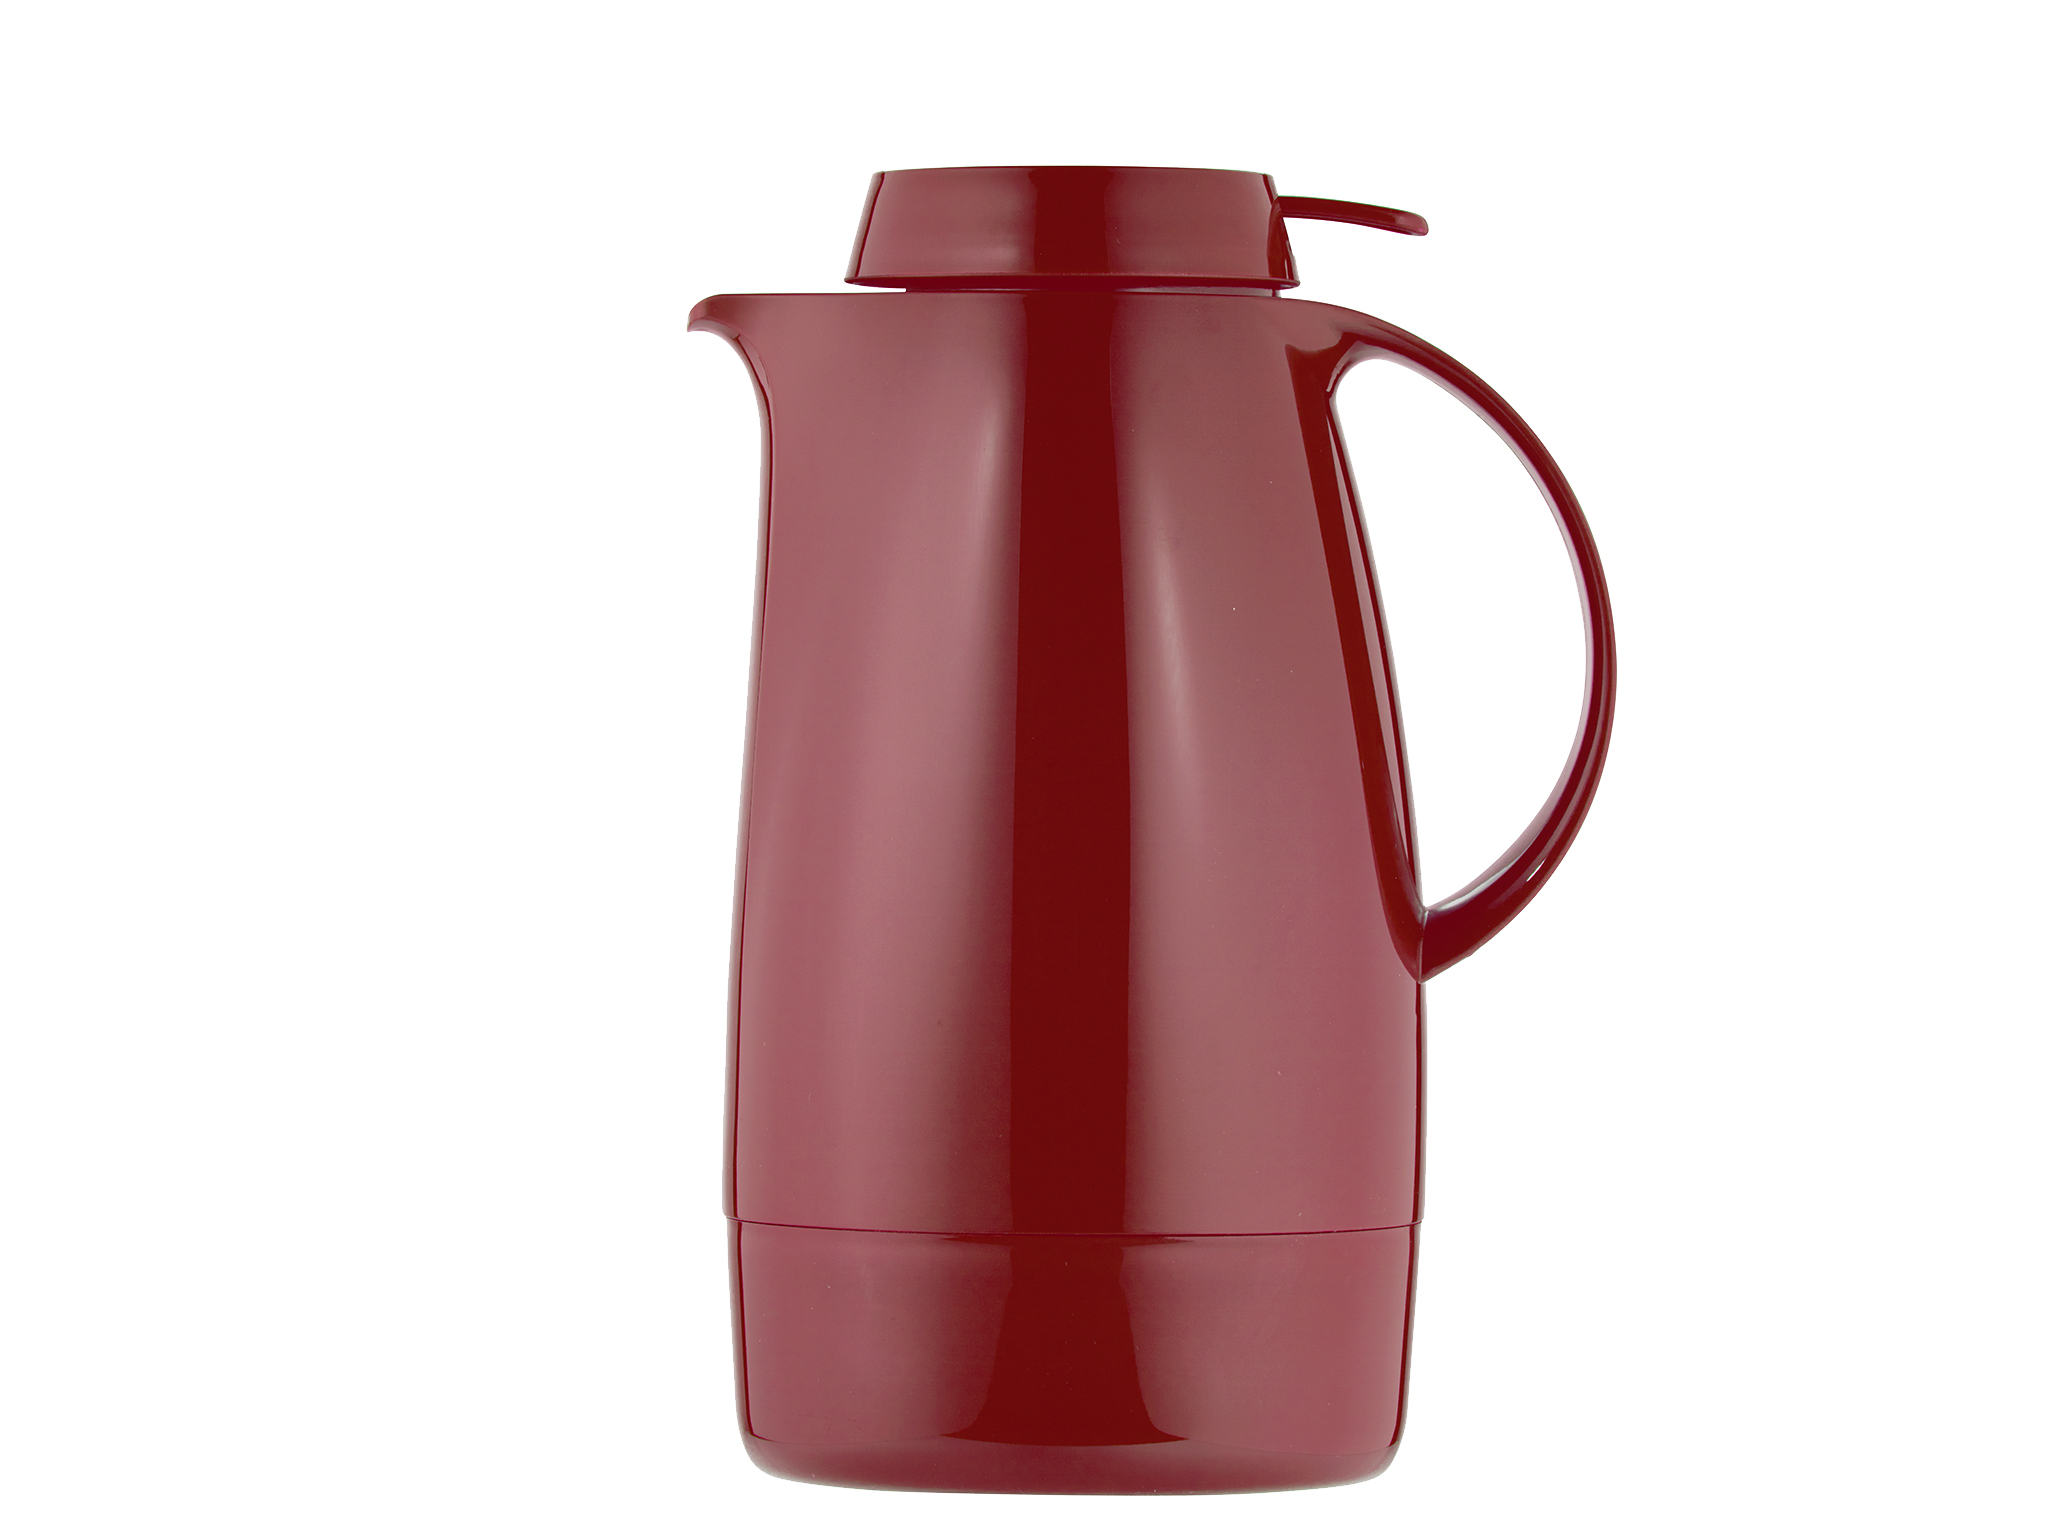 7205-046 - Pichet isotherme rouge 1.3 L SERVITHERM - Helios